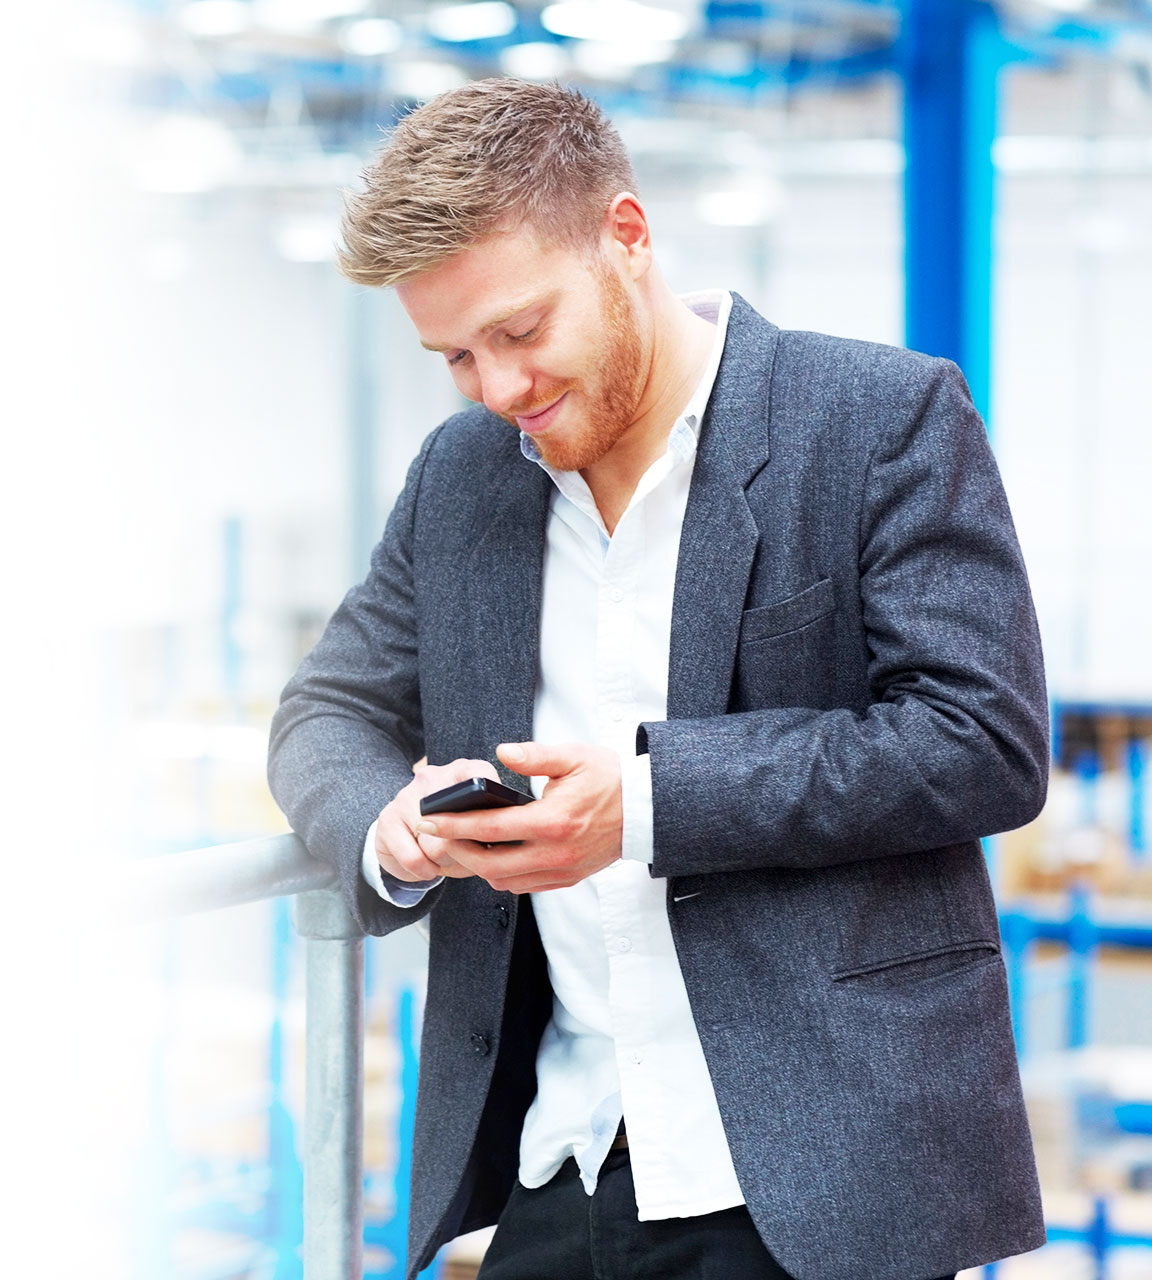 Mobile PO - SAP Mobile PR PO App perform both PR and PO release or approval instantly from anywhere